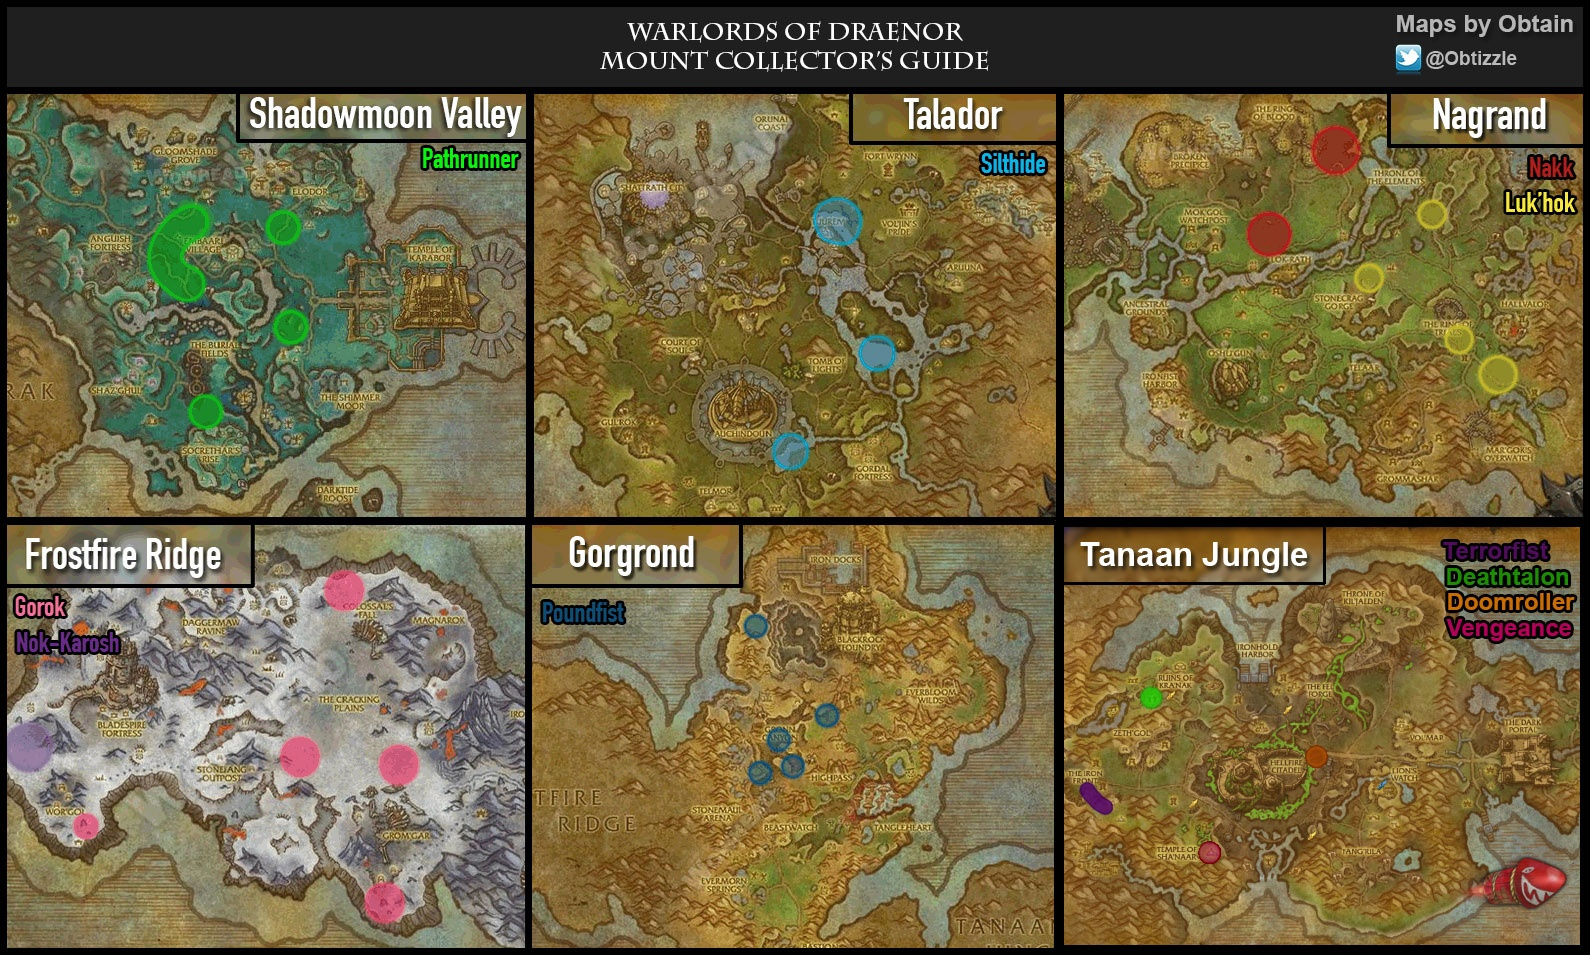 Warlords of Draenor Mount Collector's Guide - Guides - Wowhead